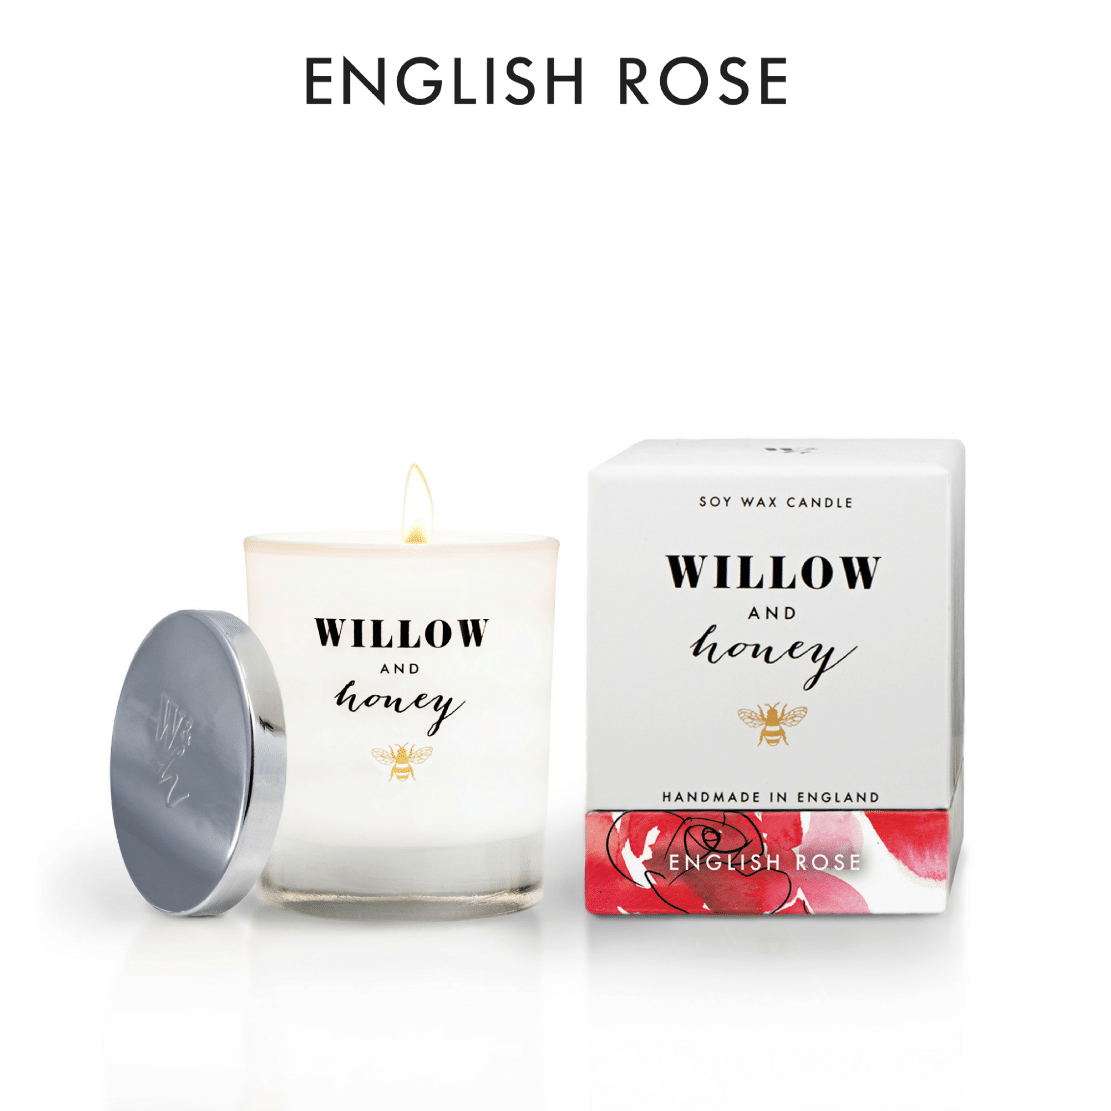 Willow and Honey English Rose Candle 220g